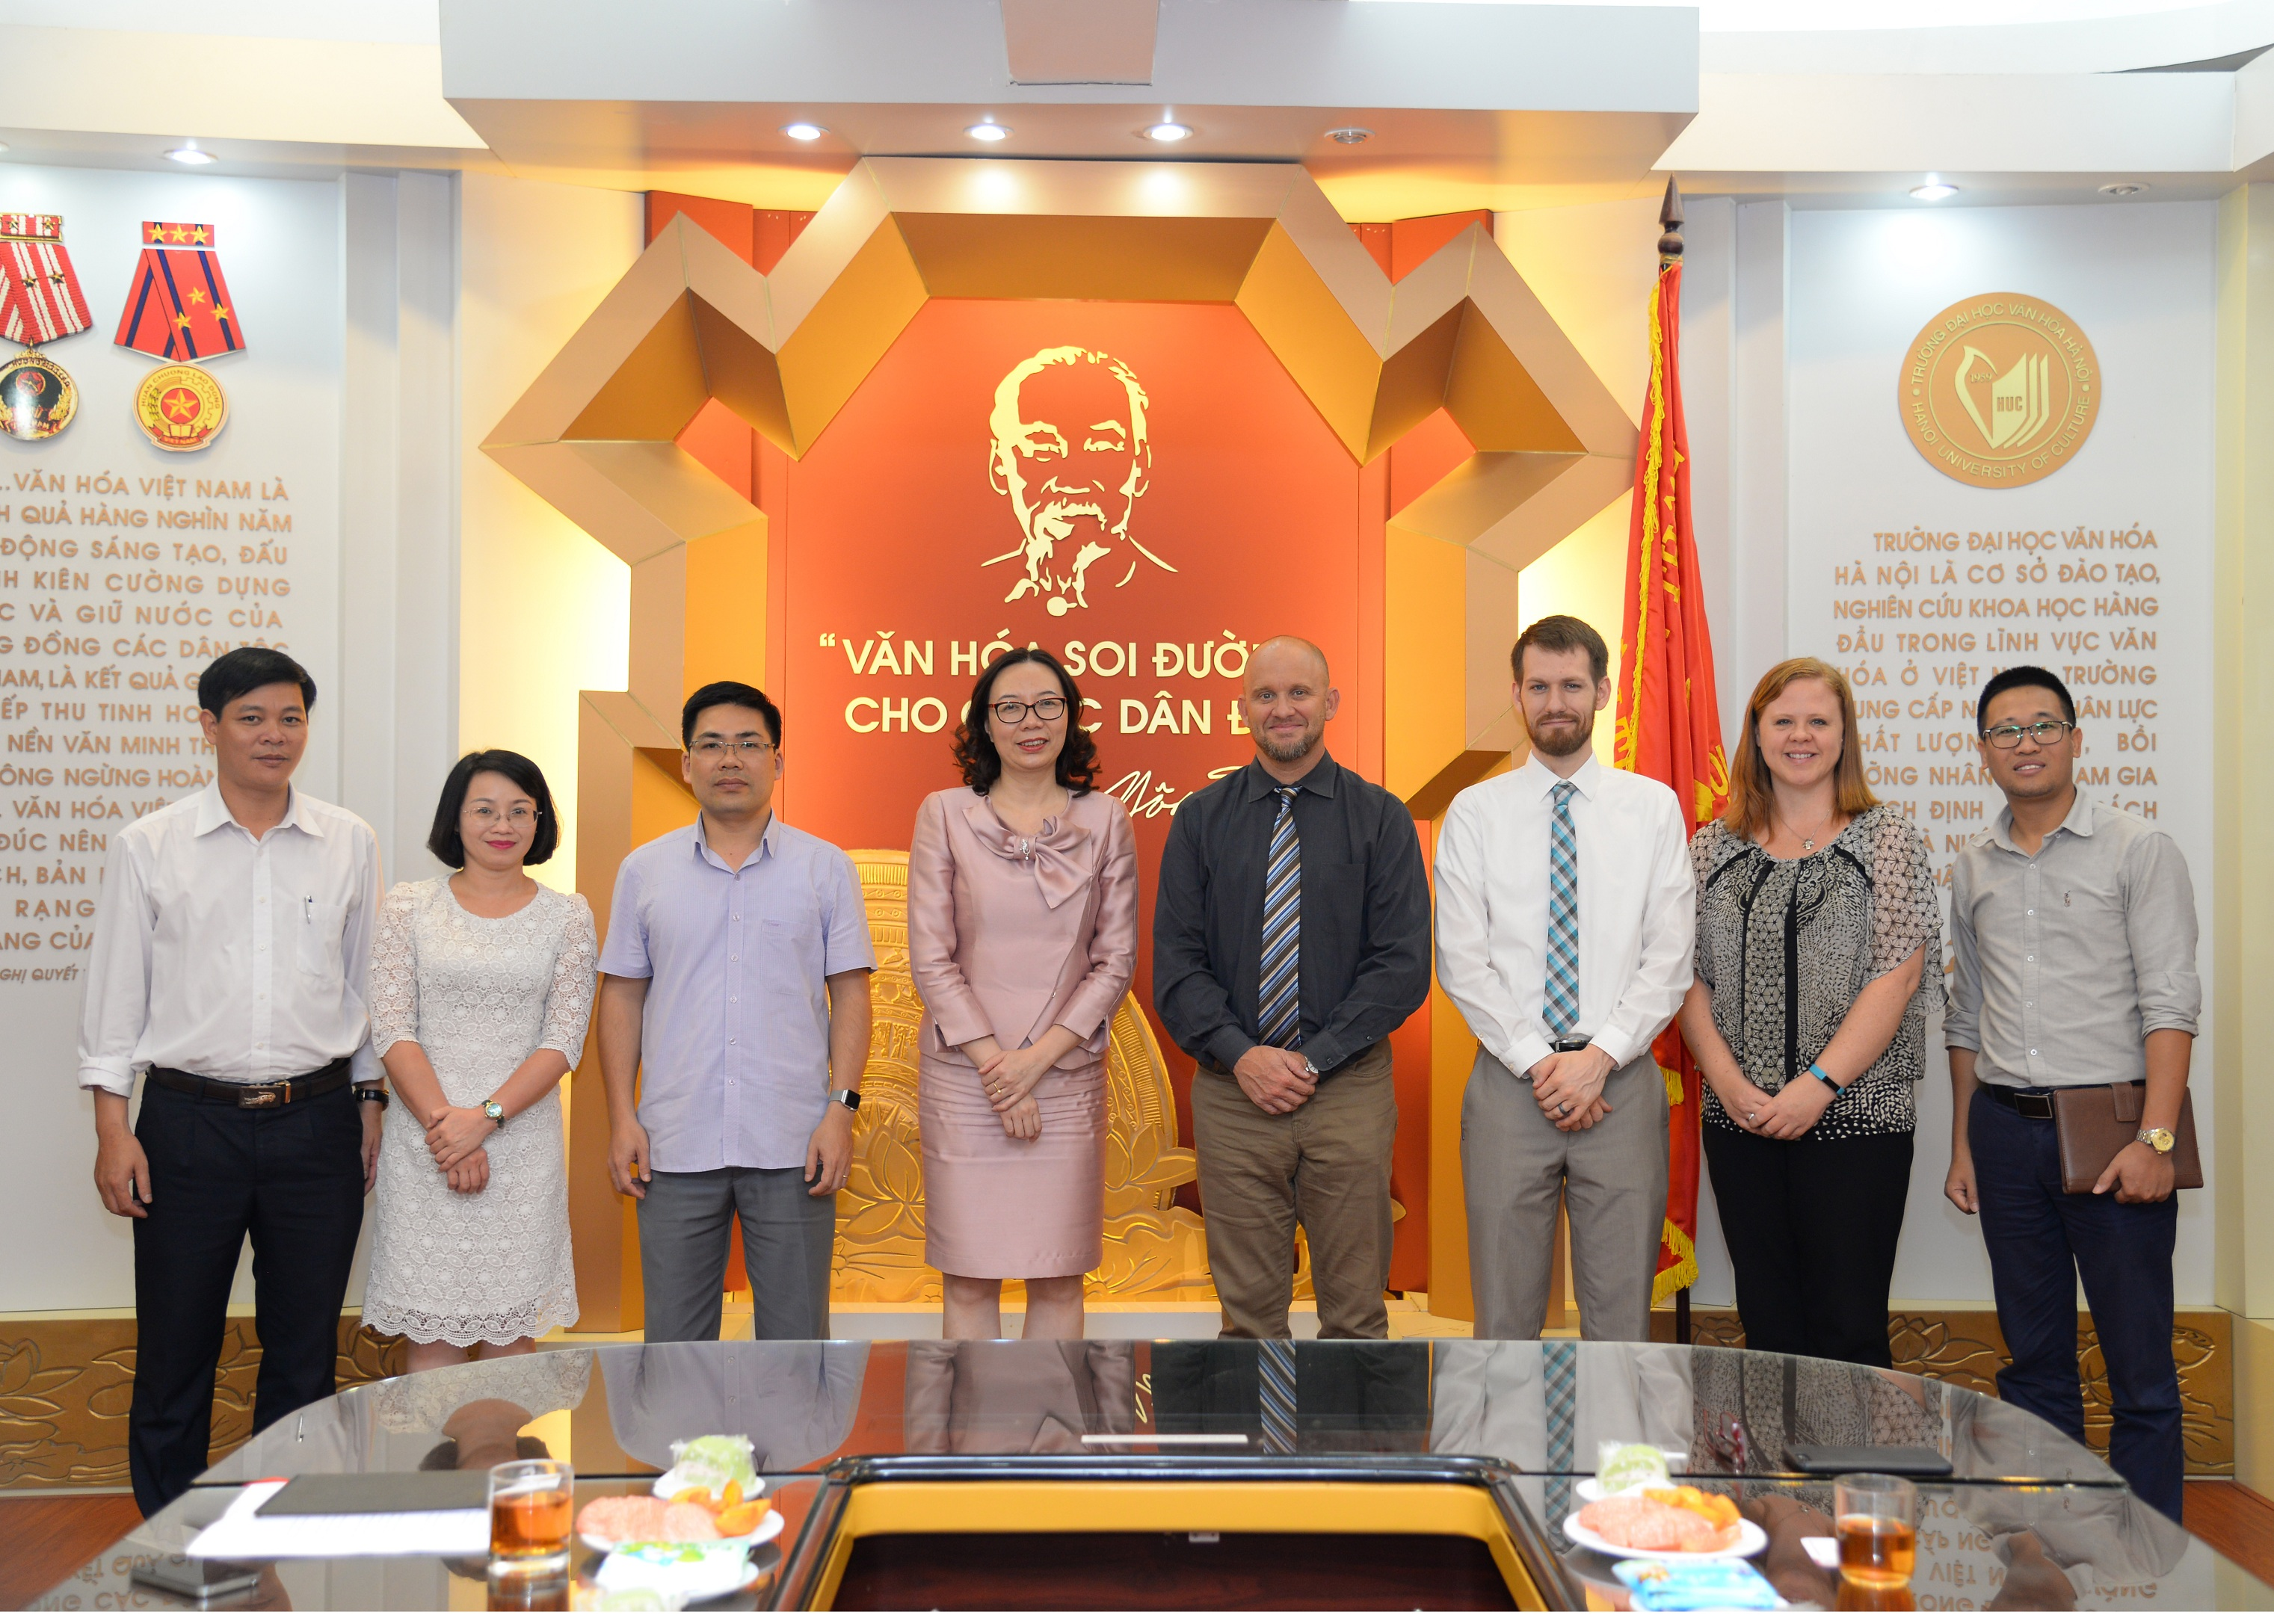 The delegation of English Language Institute (American) visited and had working session in Hanoi University of Culture